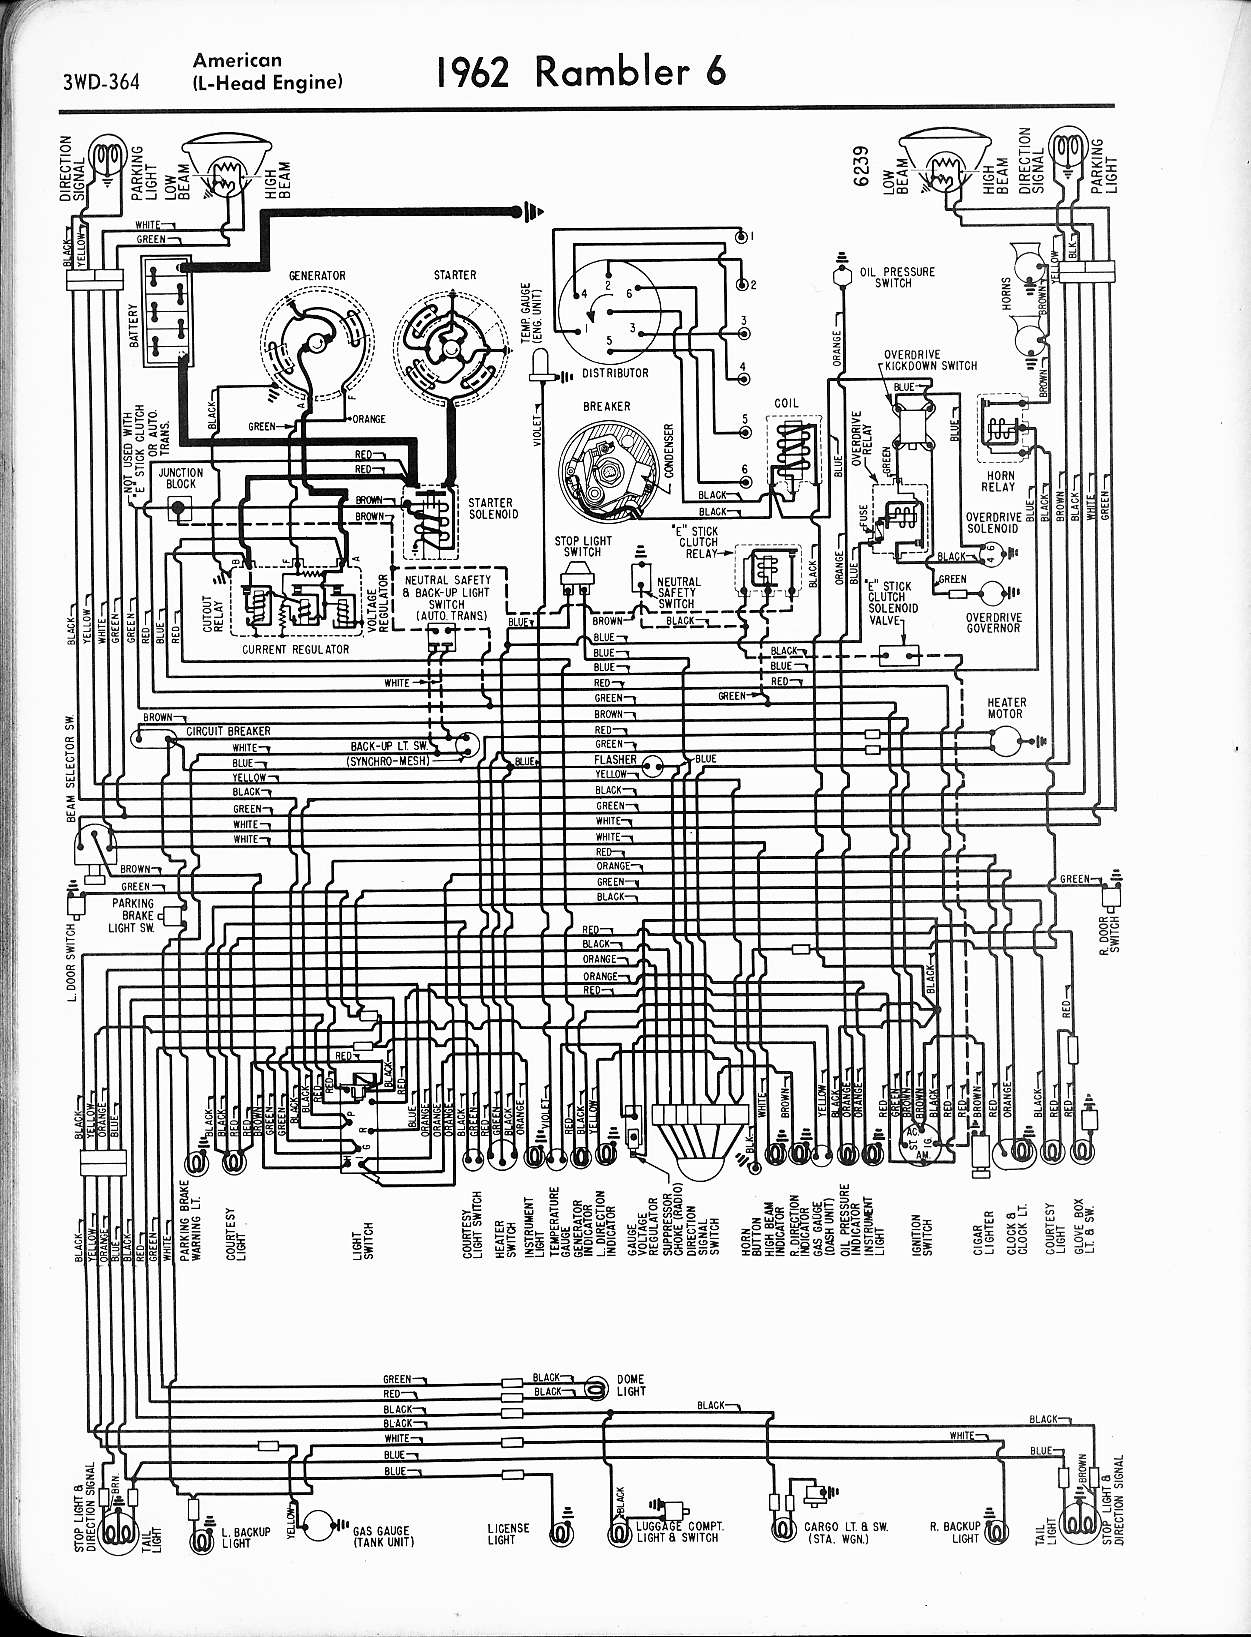 MWire5765 364 rambler wiring diagrams the old car manual project amc rebel wiring diagram at edmiracle.co